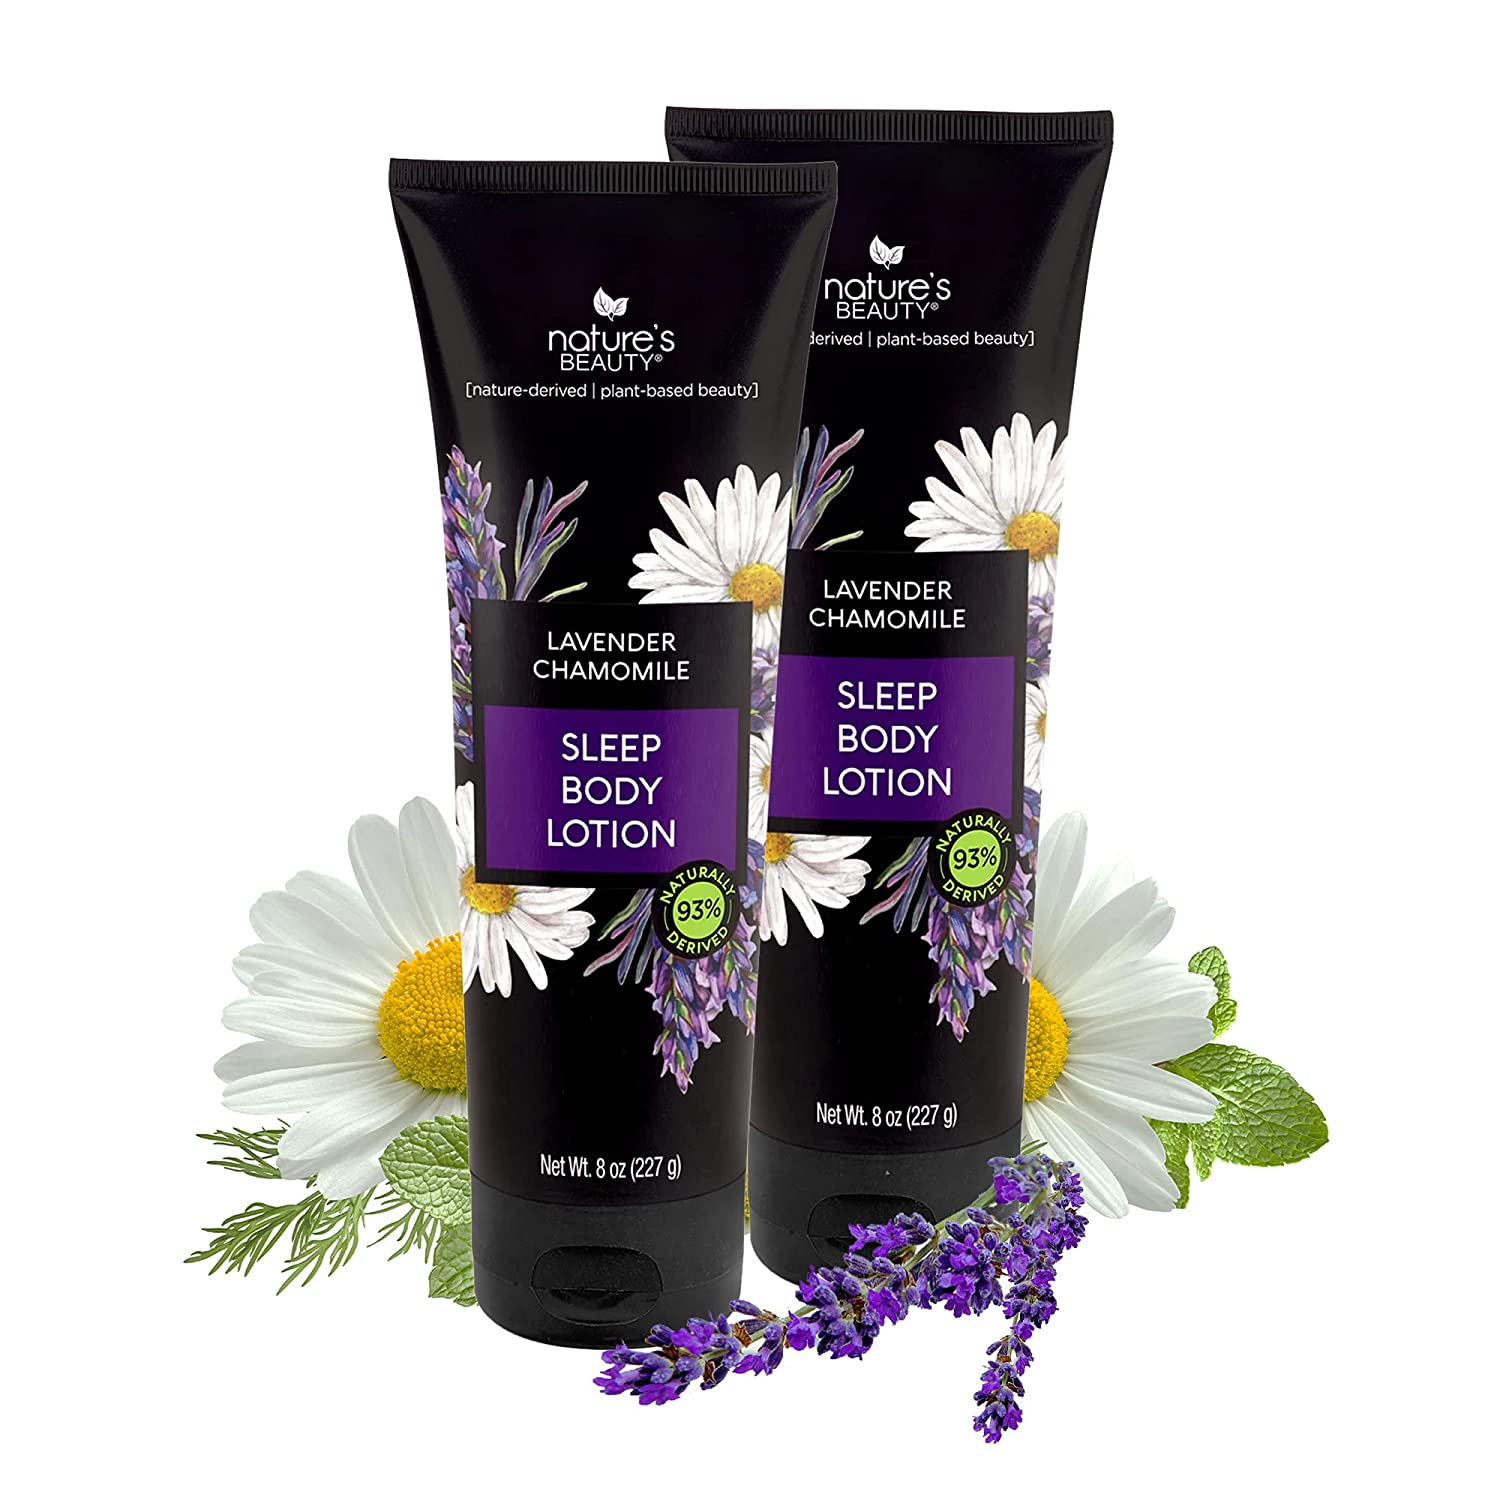 Nature's Beauty Lavender Chamomile Sleep Body Lotion | Sleep Well with Lavender Moisturizer Made with Shea Butter, Jojoba, Coconut + Moringa Seed Oils - 2-pack